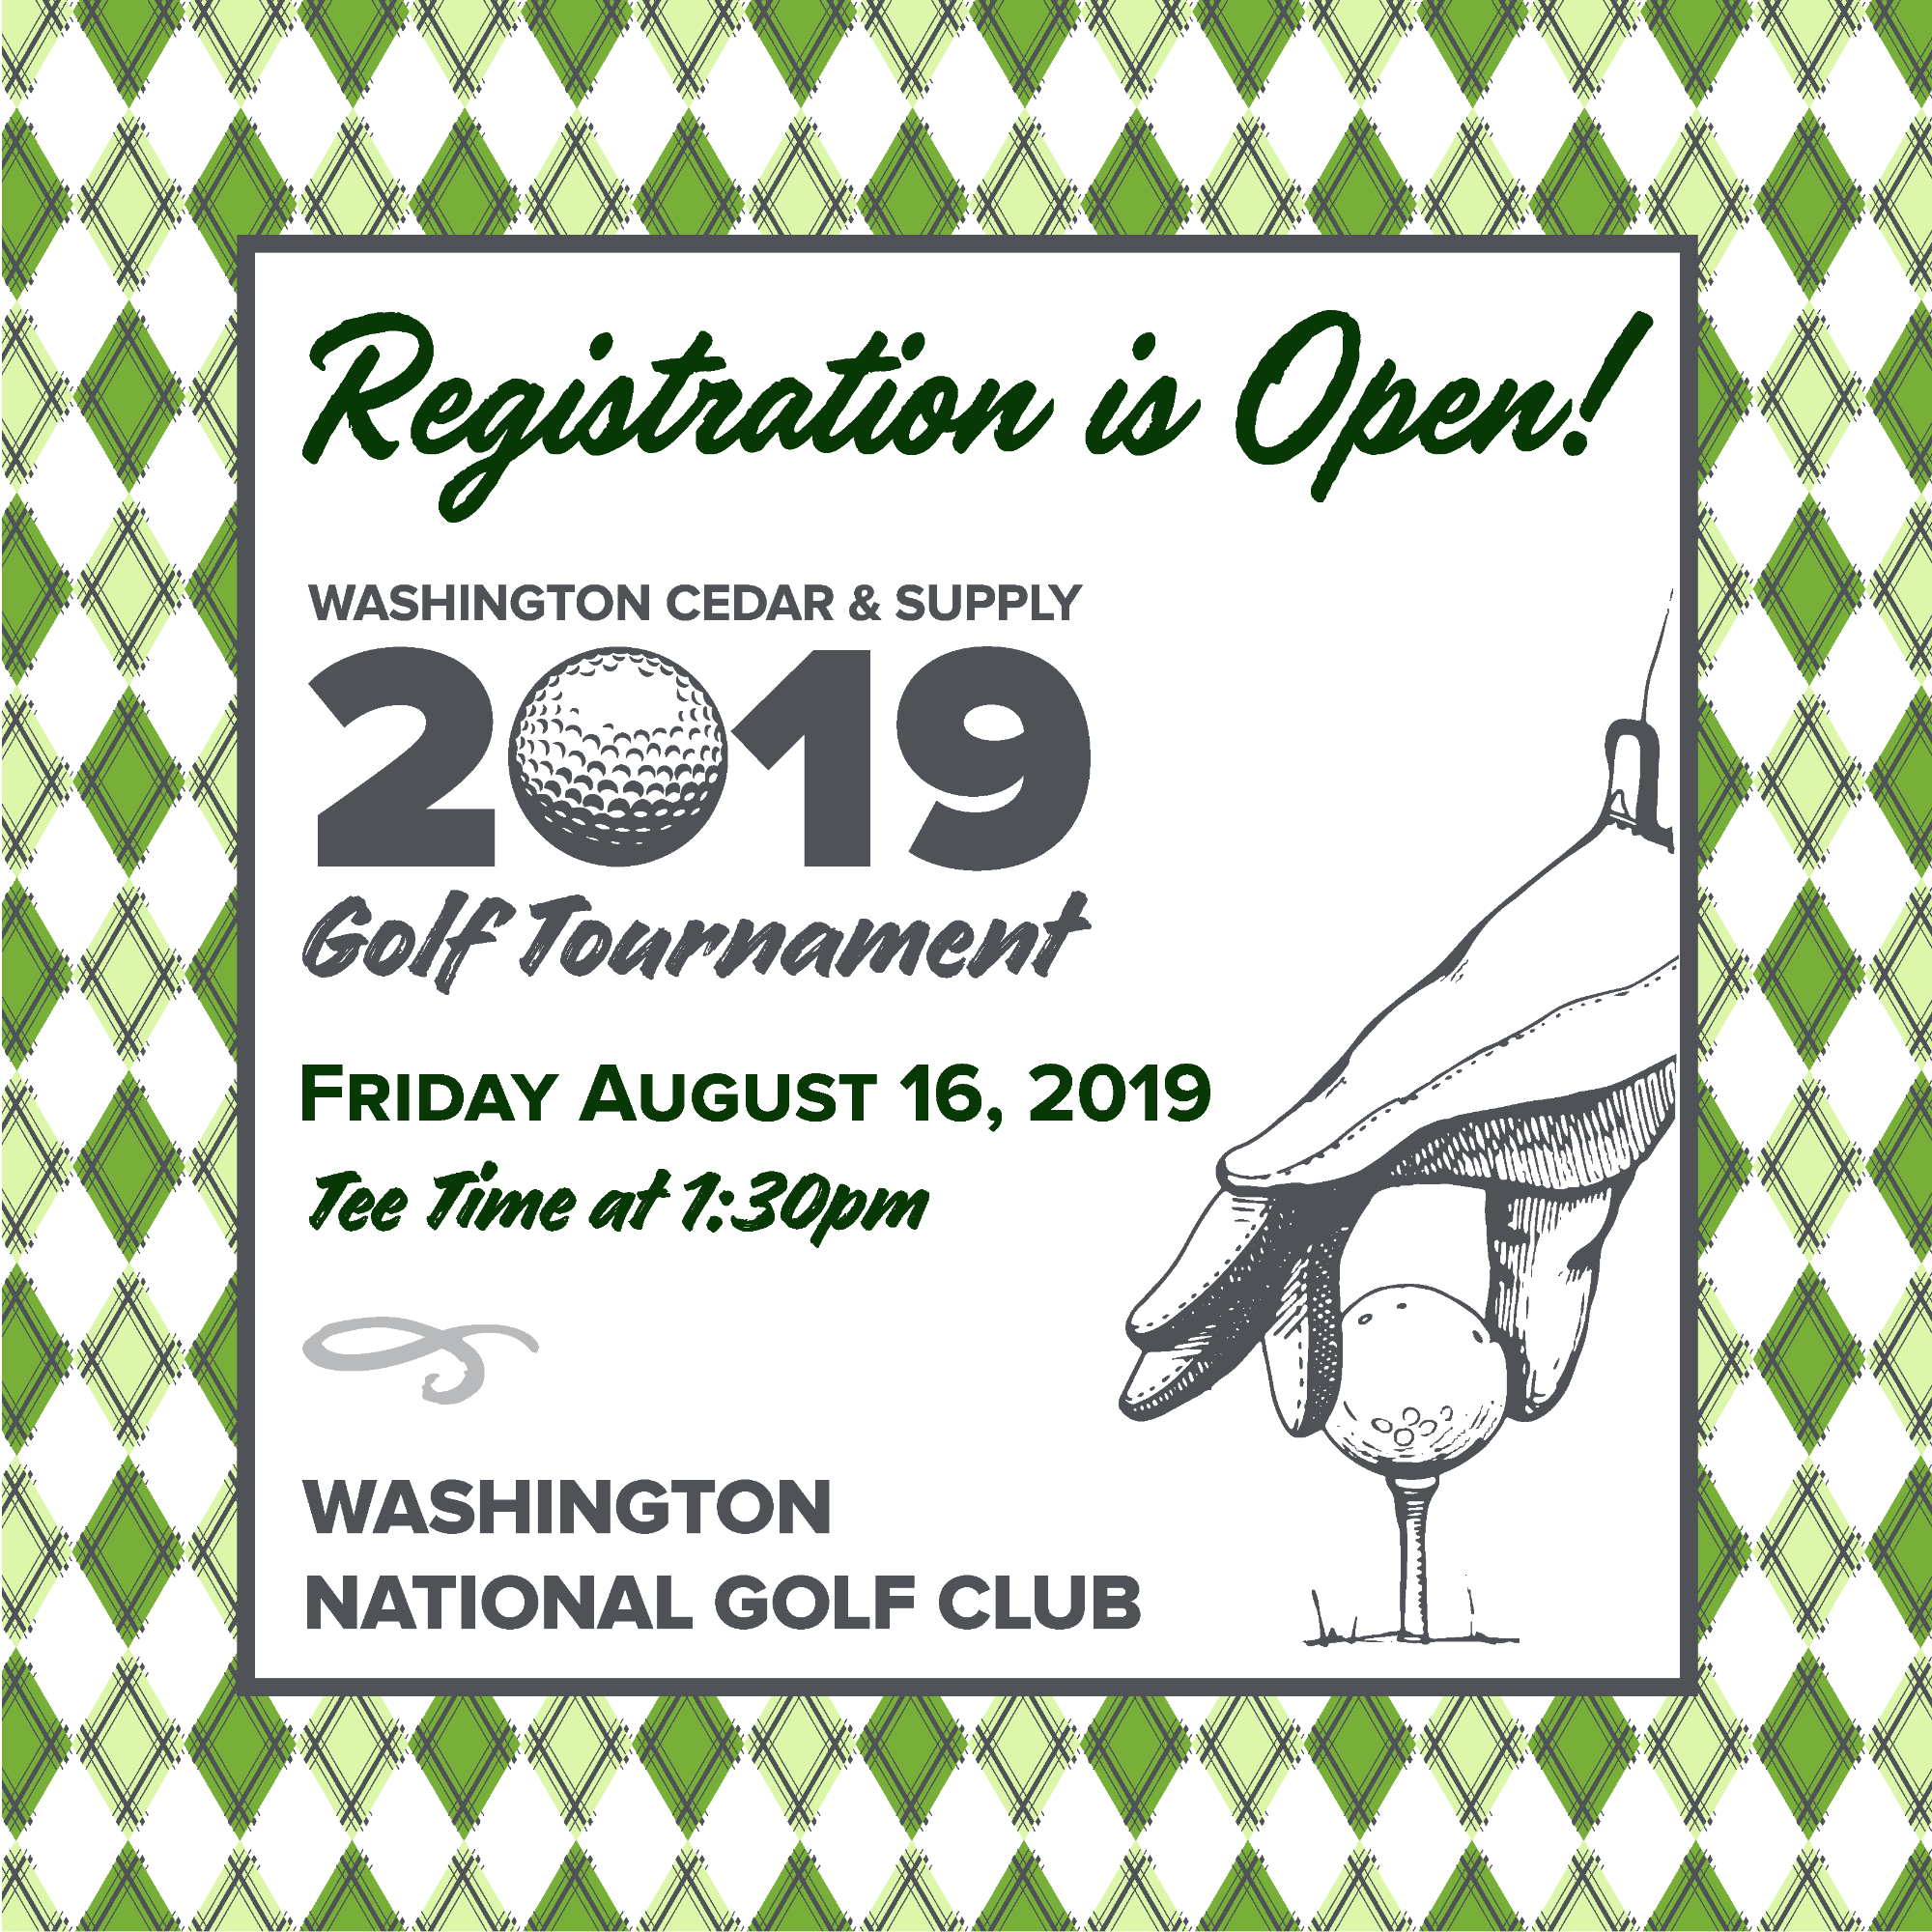 Blog Post Image 2019 Golf Tournament Registration is Open!